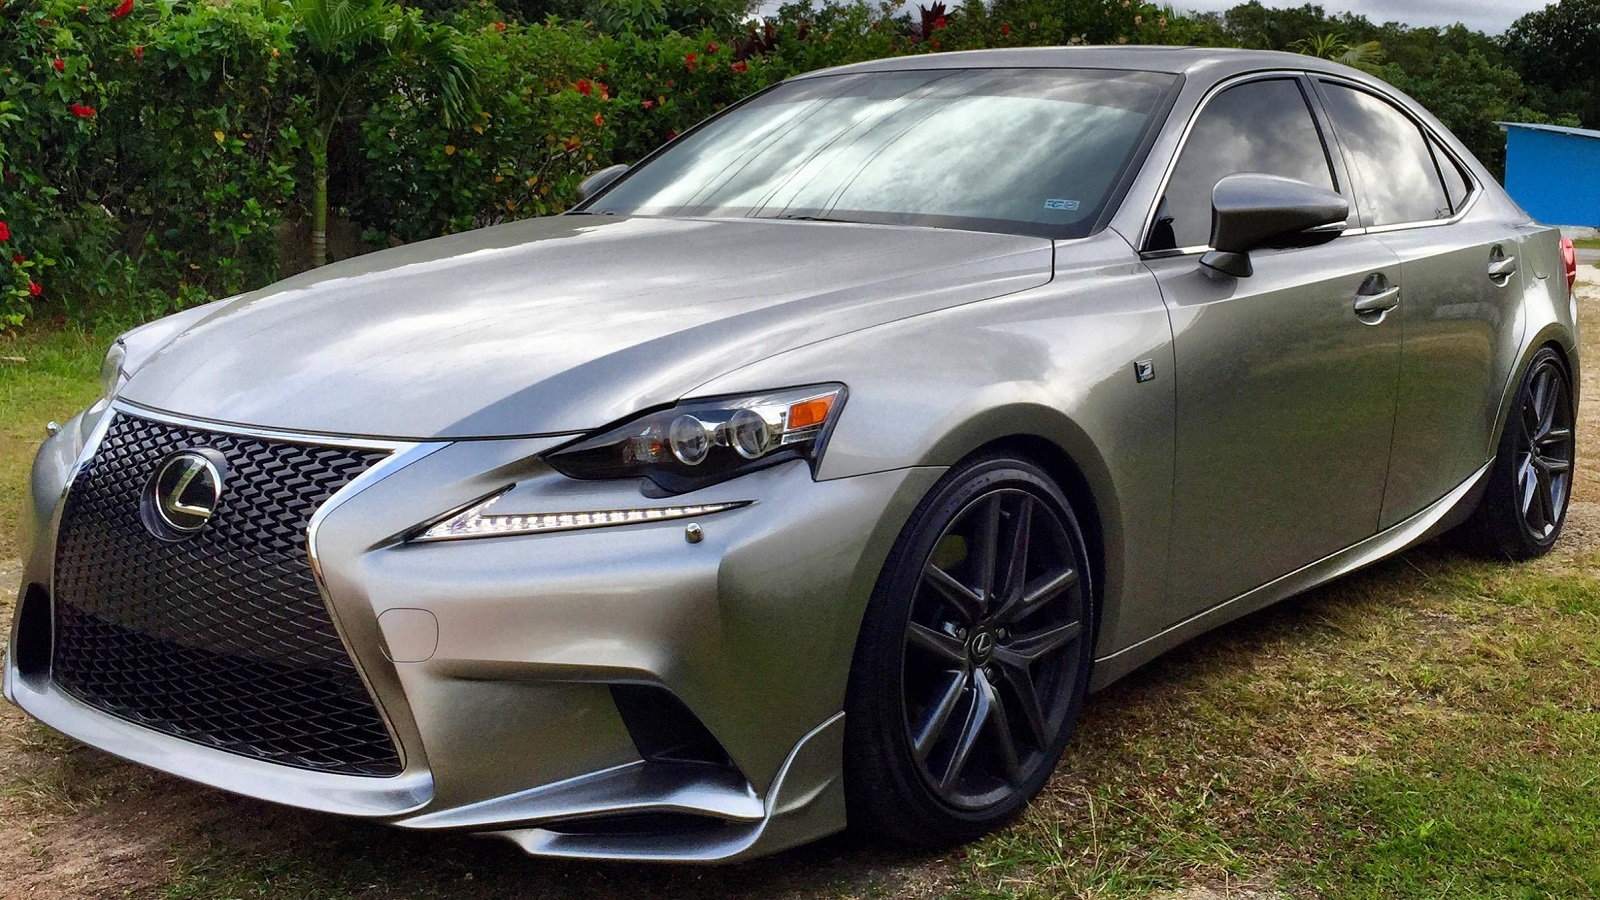 Why the IS350 FSport May Be the Best Car Youll Ever Own  Clublexus